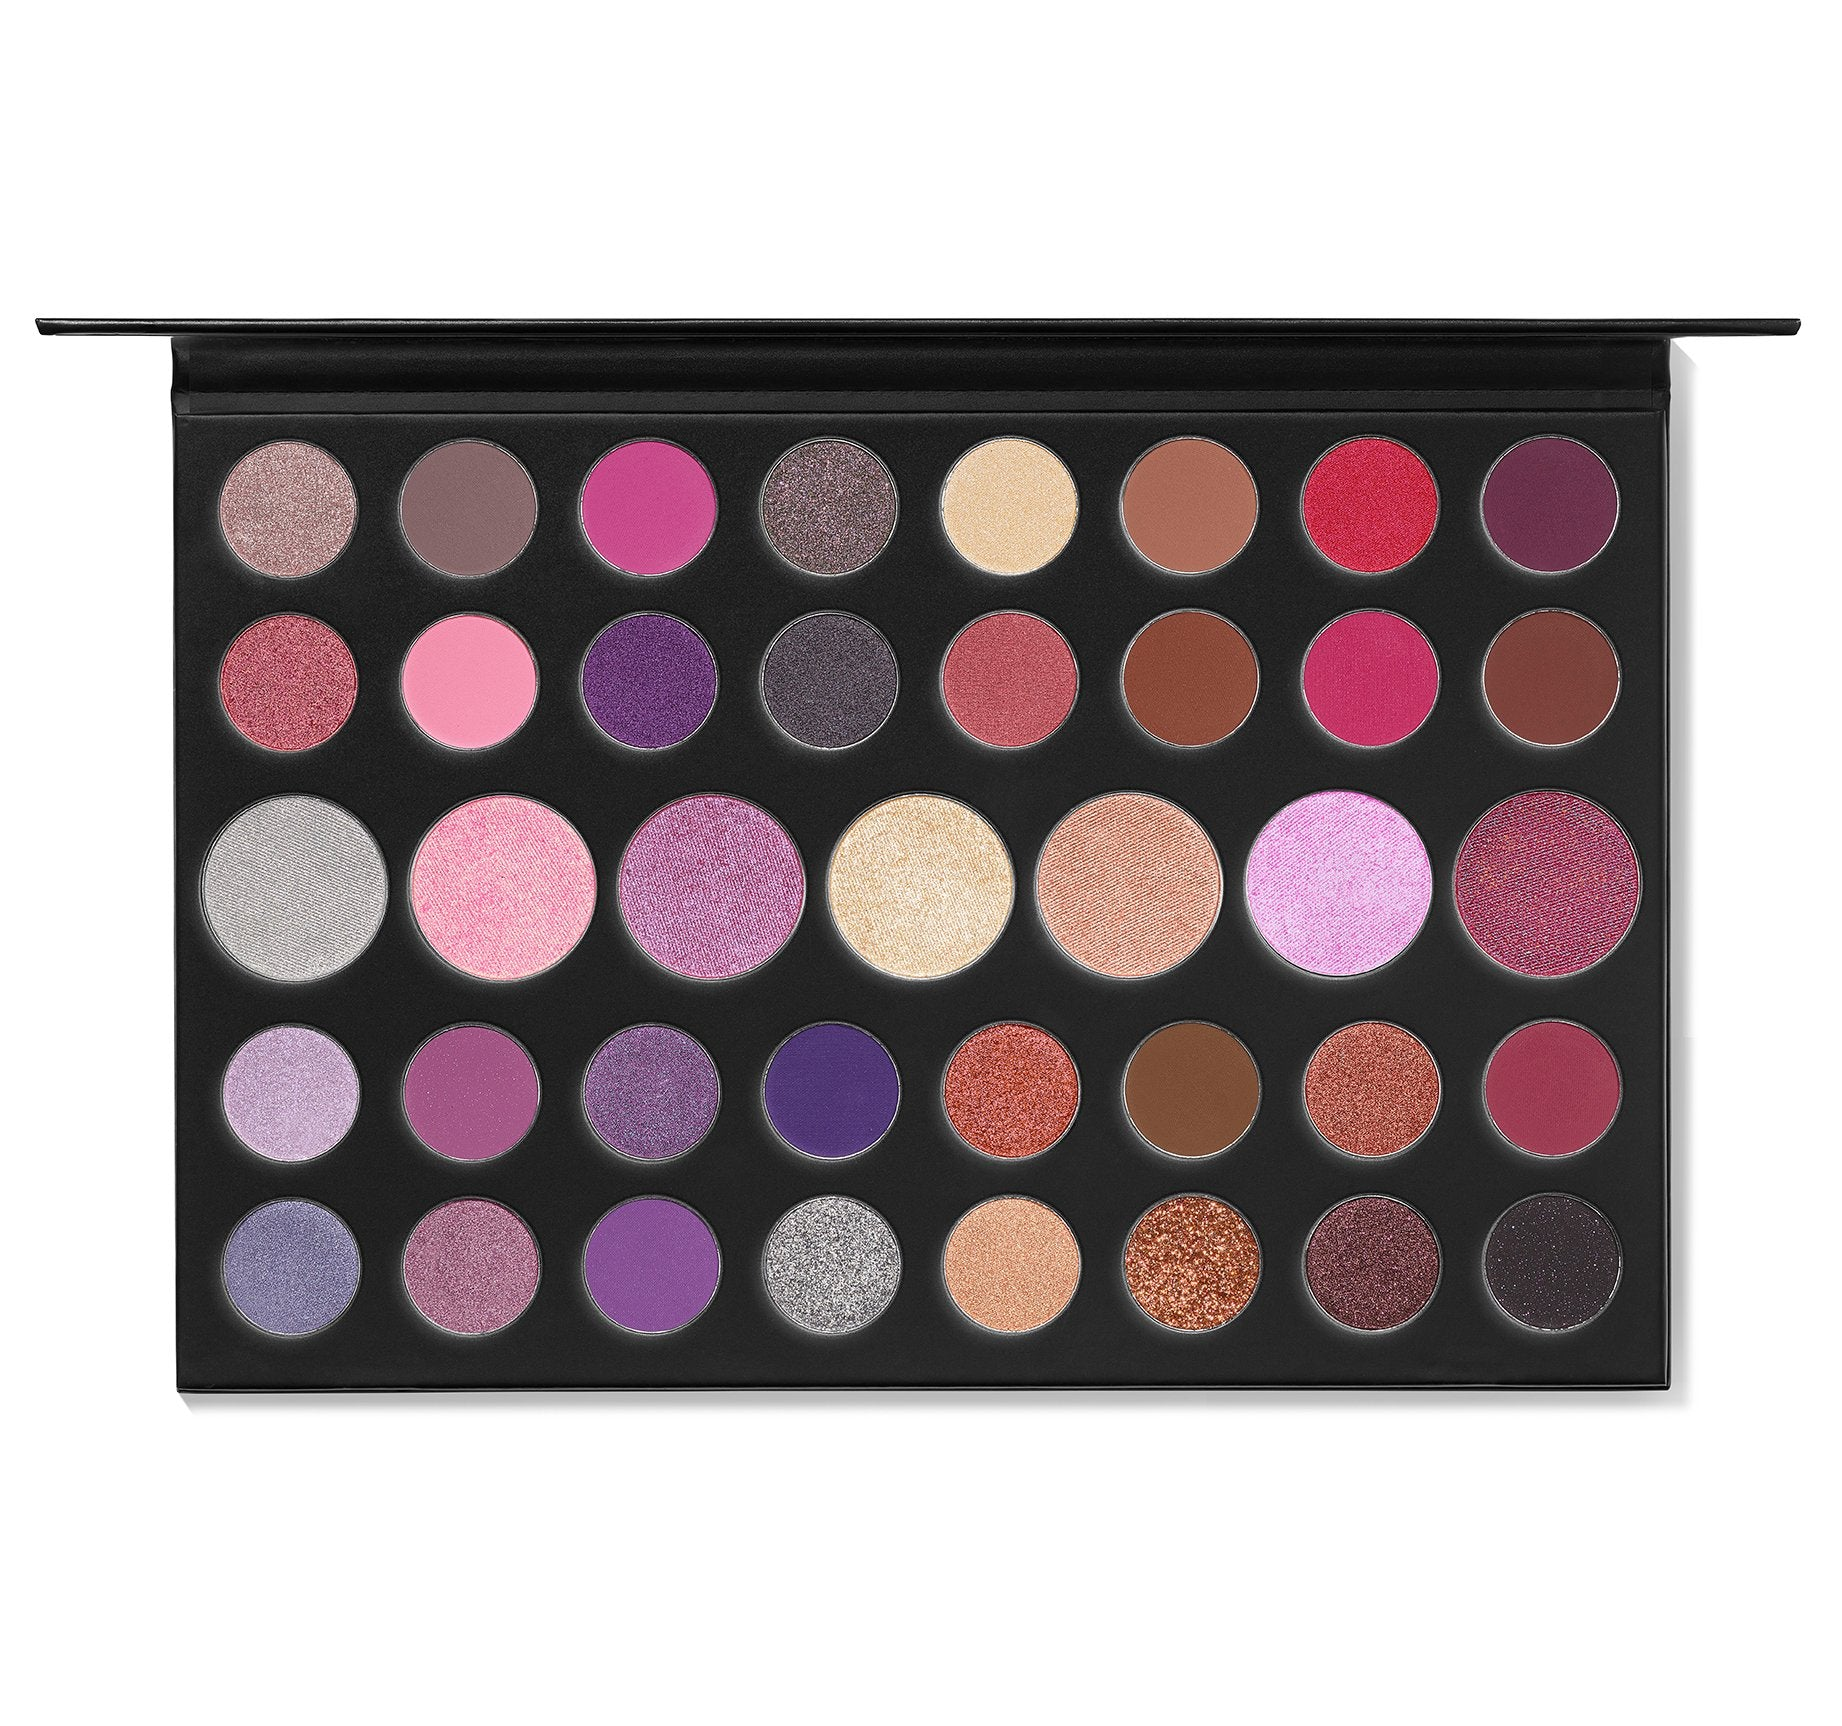 39S - SUCH A GEM ARTISTRY PALETTE, view larger image